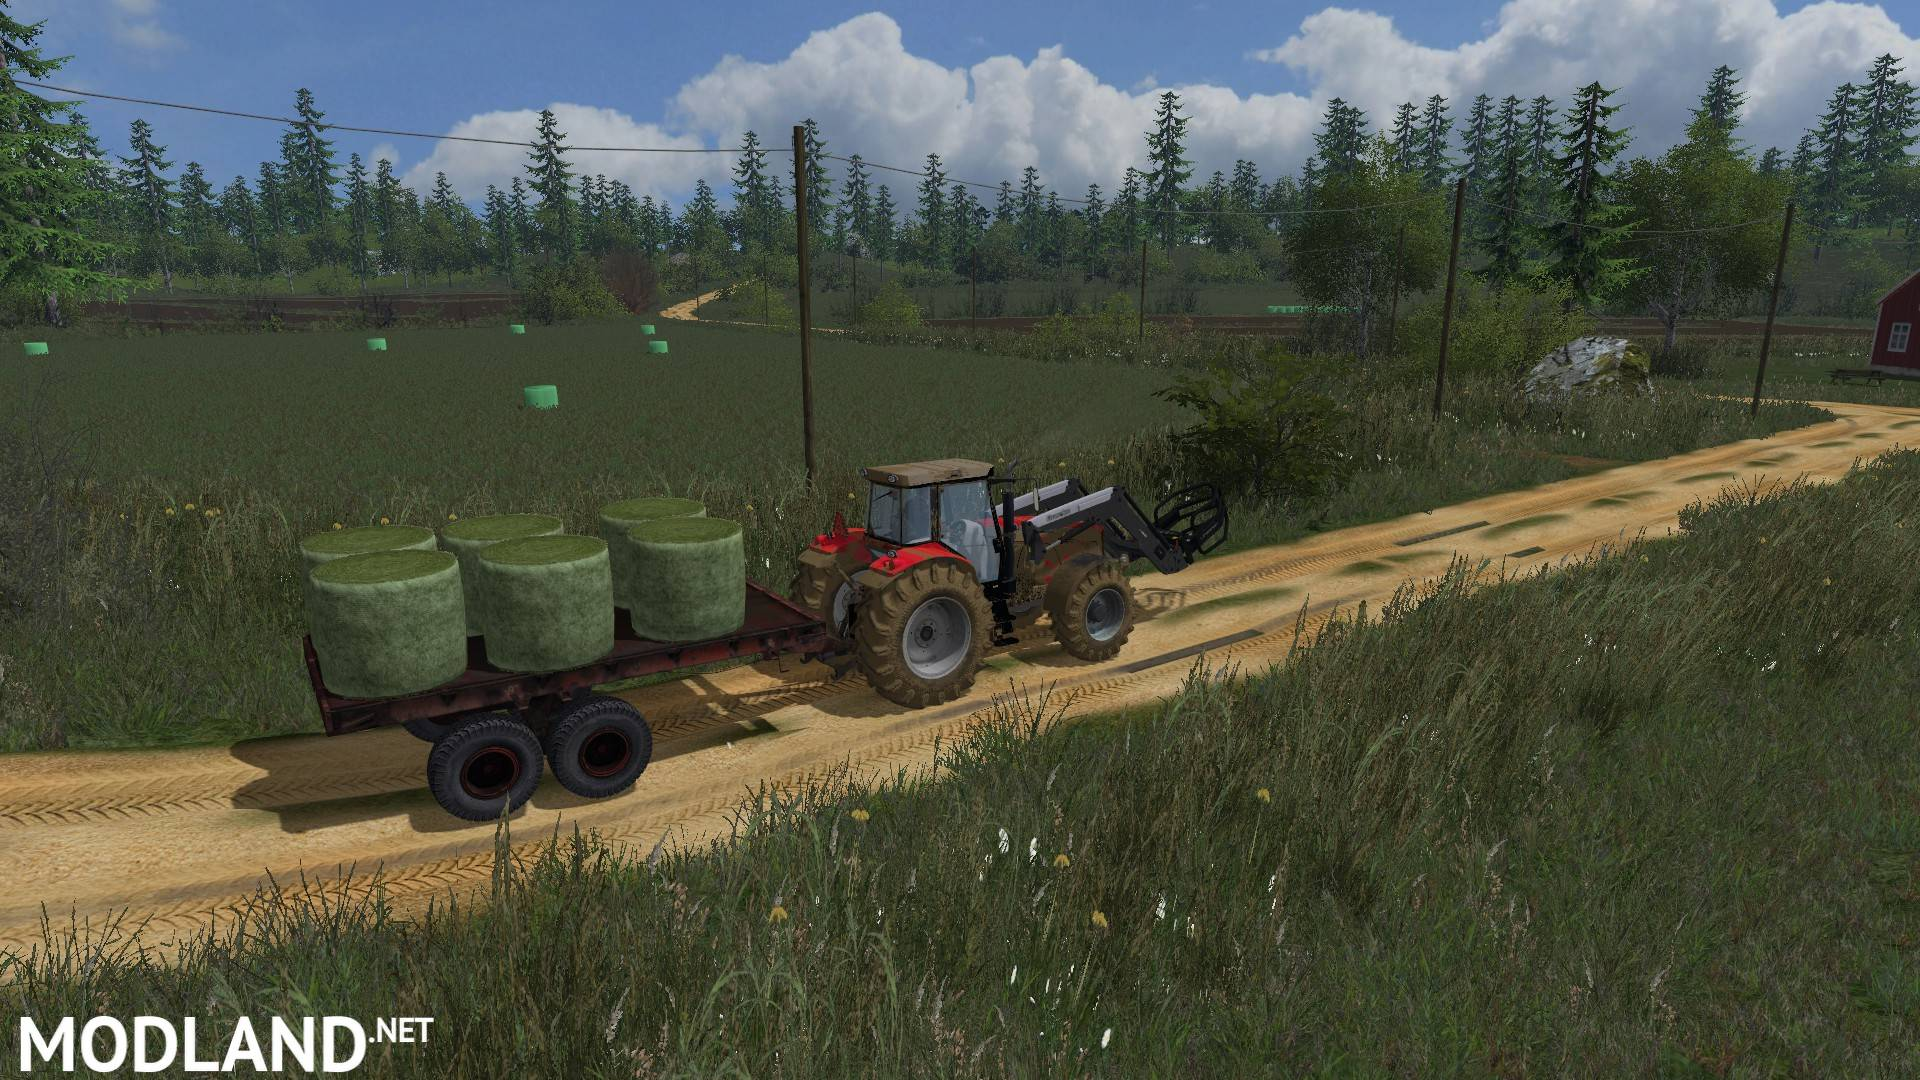 google map of zil with Finnish Map Small Farm 2 on Zotye Nomad ID15HzGU as well Brazil likewise Spintires Map Dpi Forestry Expert further Ben tawit centerblog additionally Dp 804hmi St 4 Kanal Mobil Dvr Kayit Cihazi.